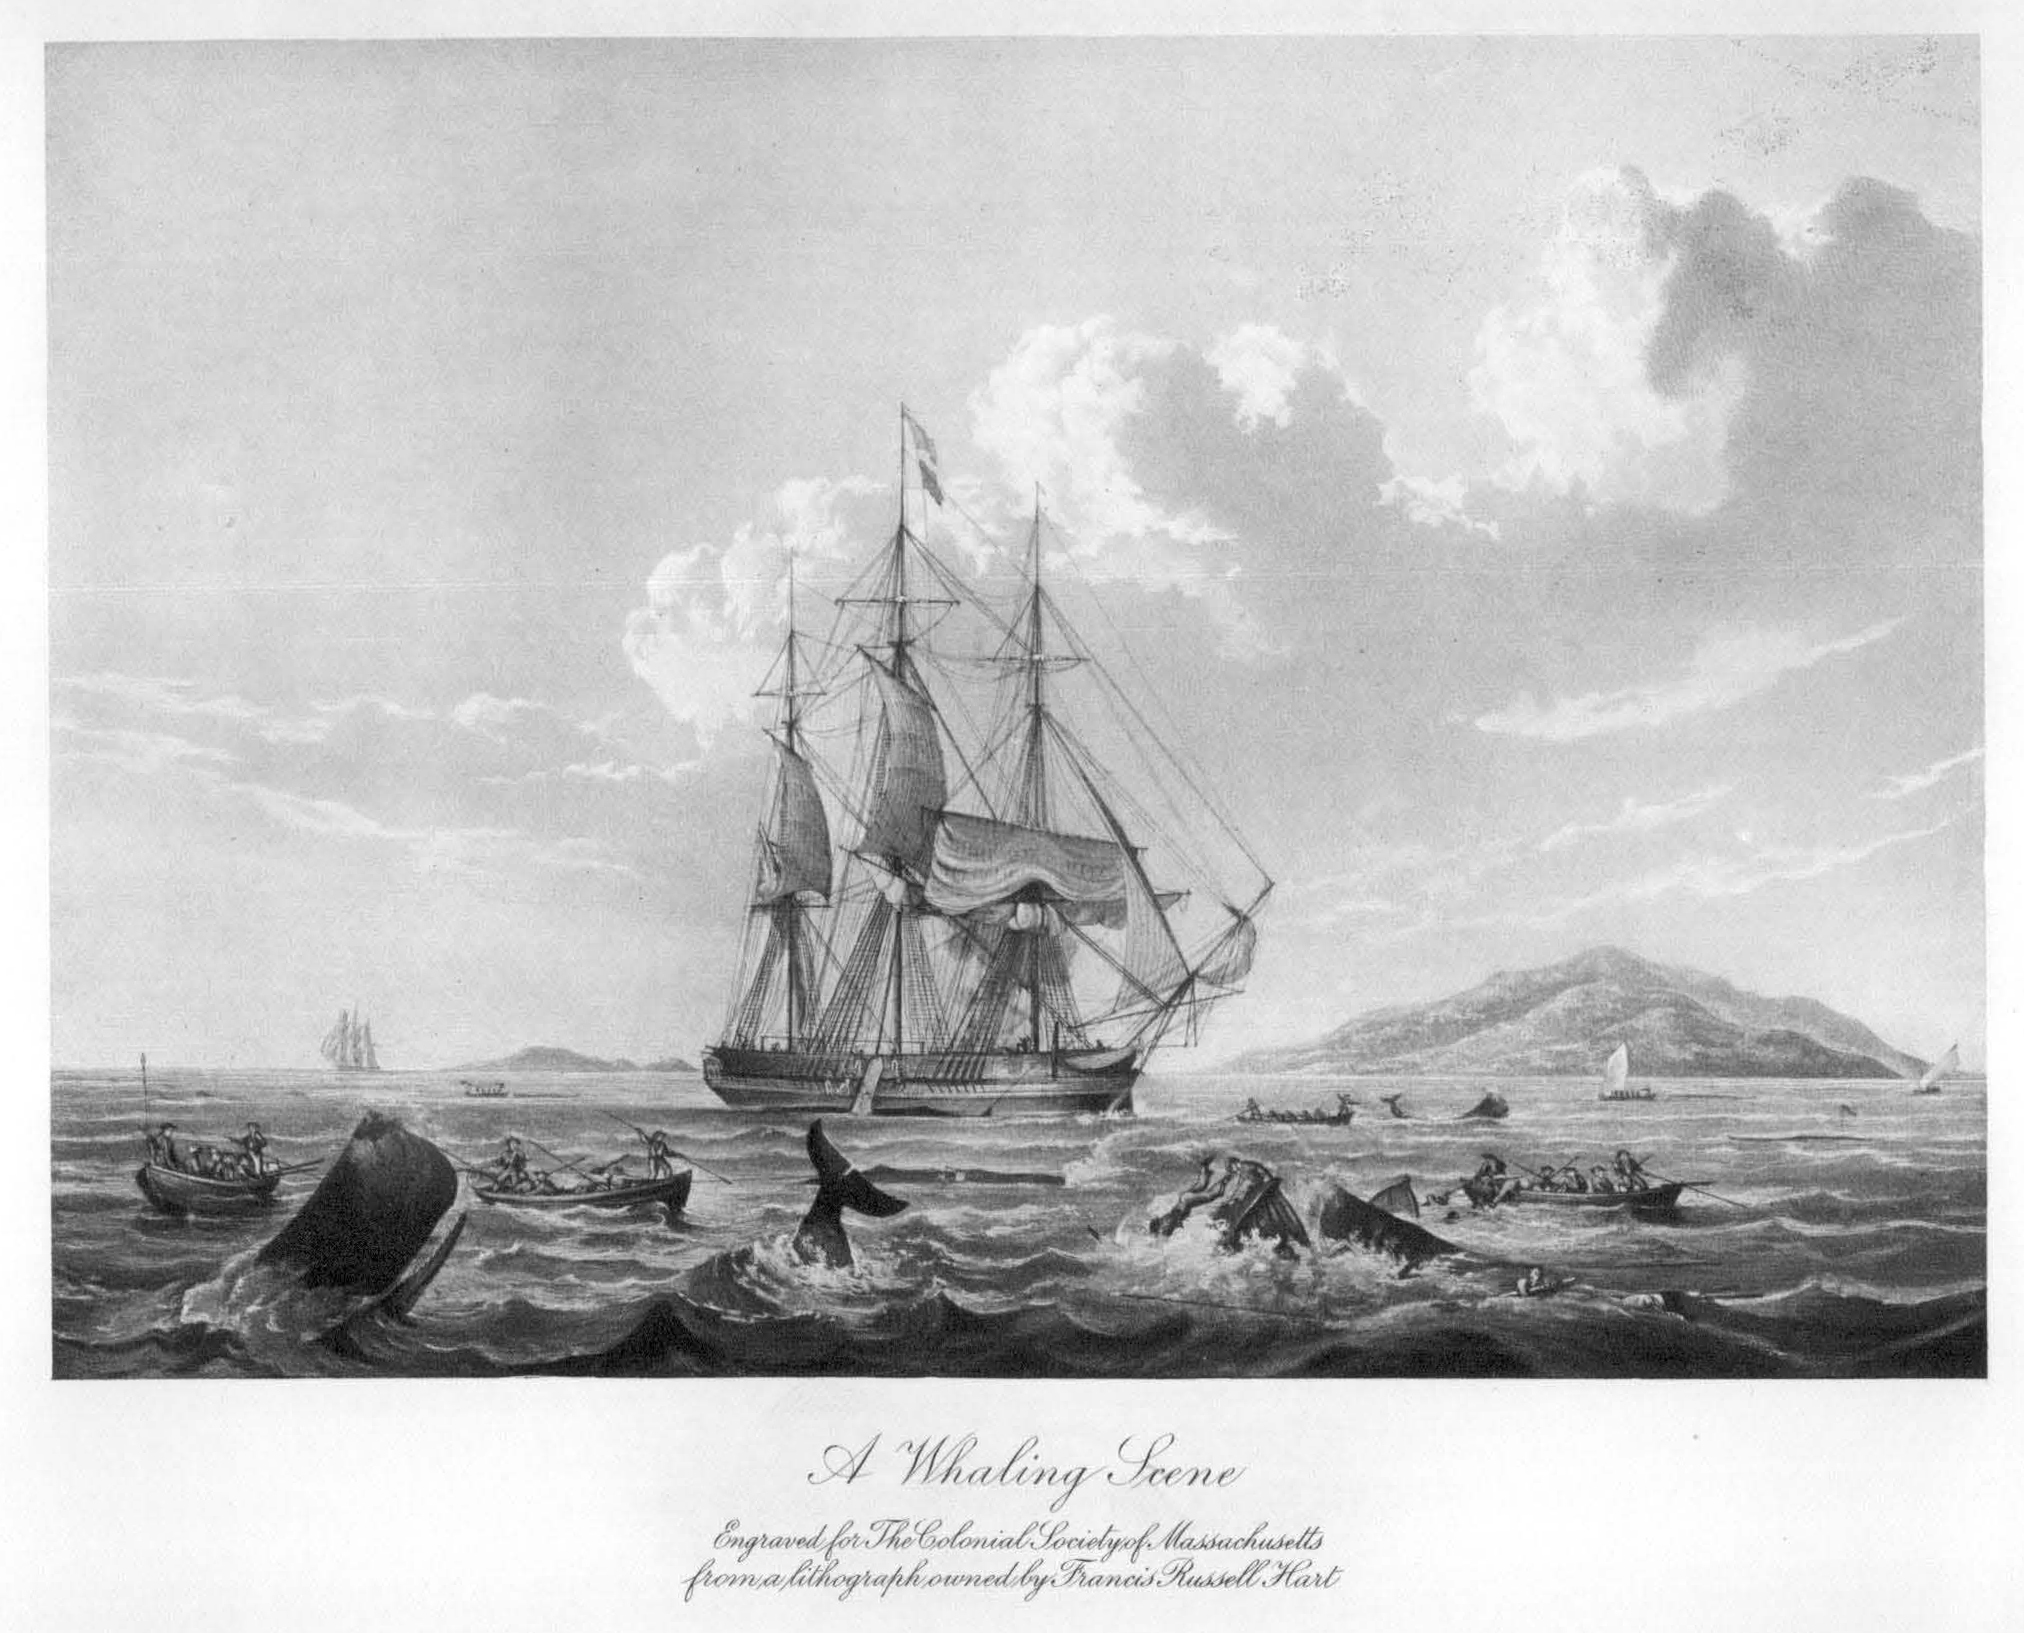 Whalers in action wood engraving published in 1855 stock illustration - In April 1771 Two Nantucket Whaling Vessels Were At Anchor In The Roadstead Of Abaco A Ship With Distress Signals Flying Was Sighted Off The Port And The